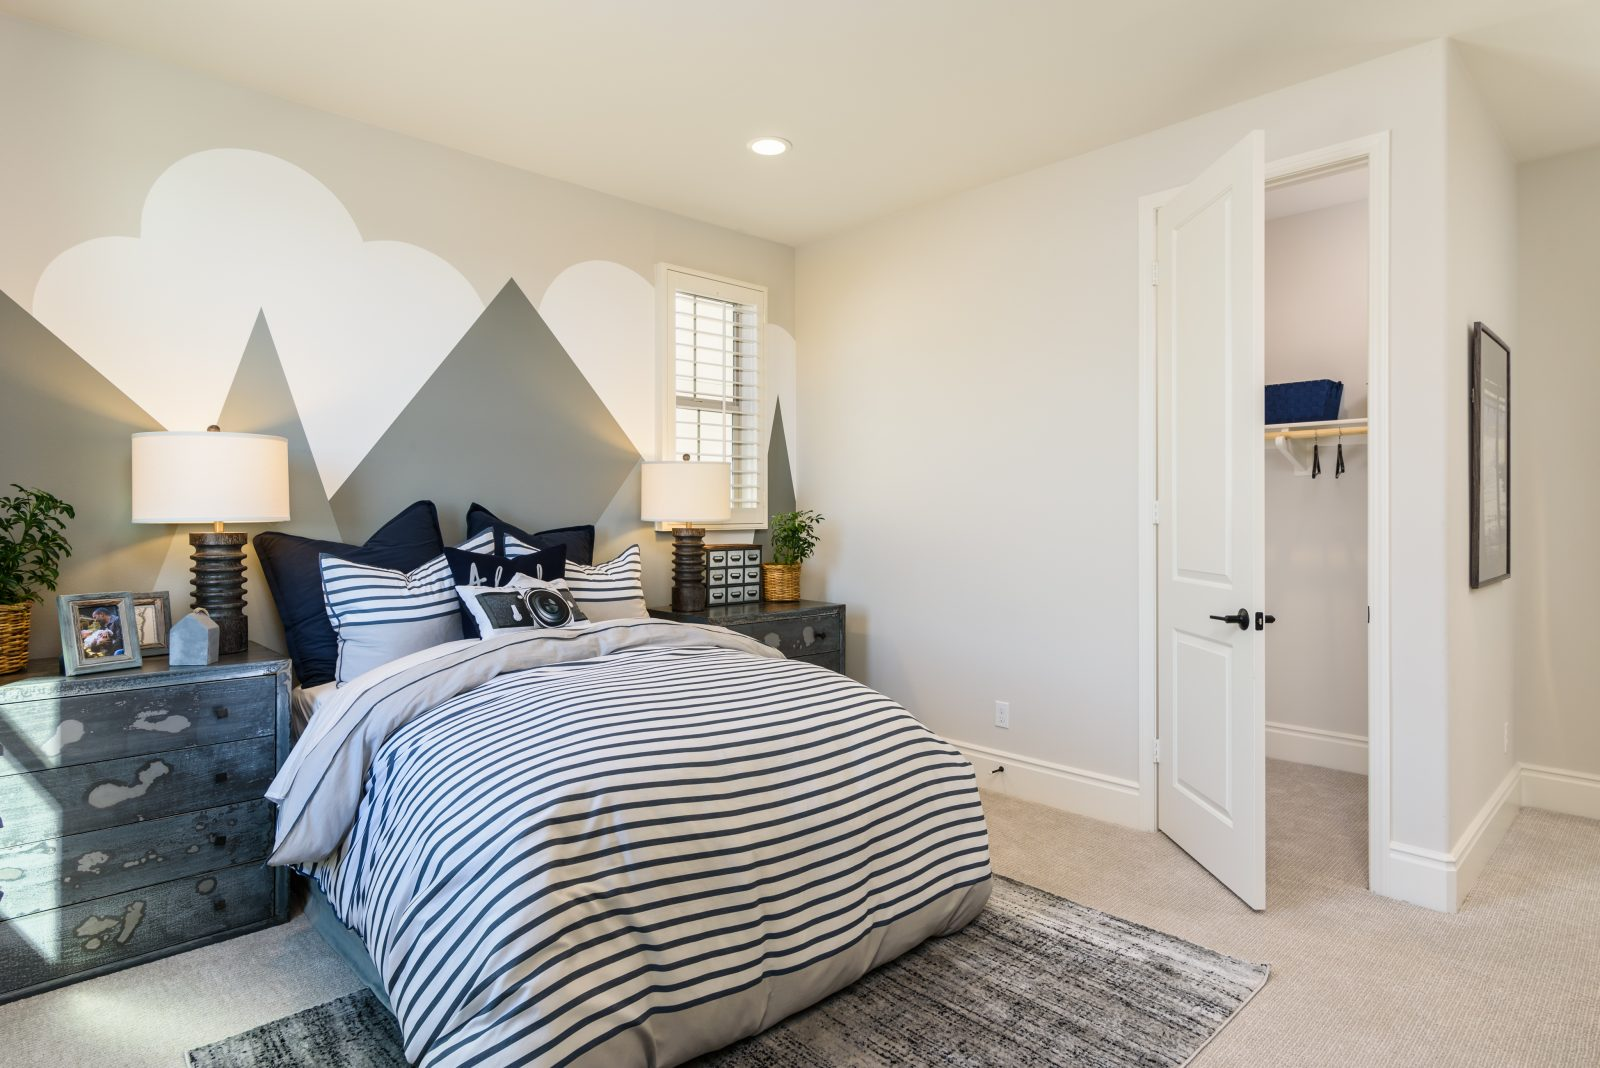 Bedroom | Haciendas at The Village of Escaya in Chula Vista, CA | Brookfield Residential